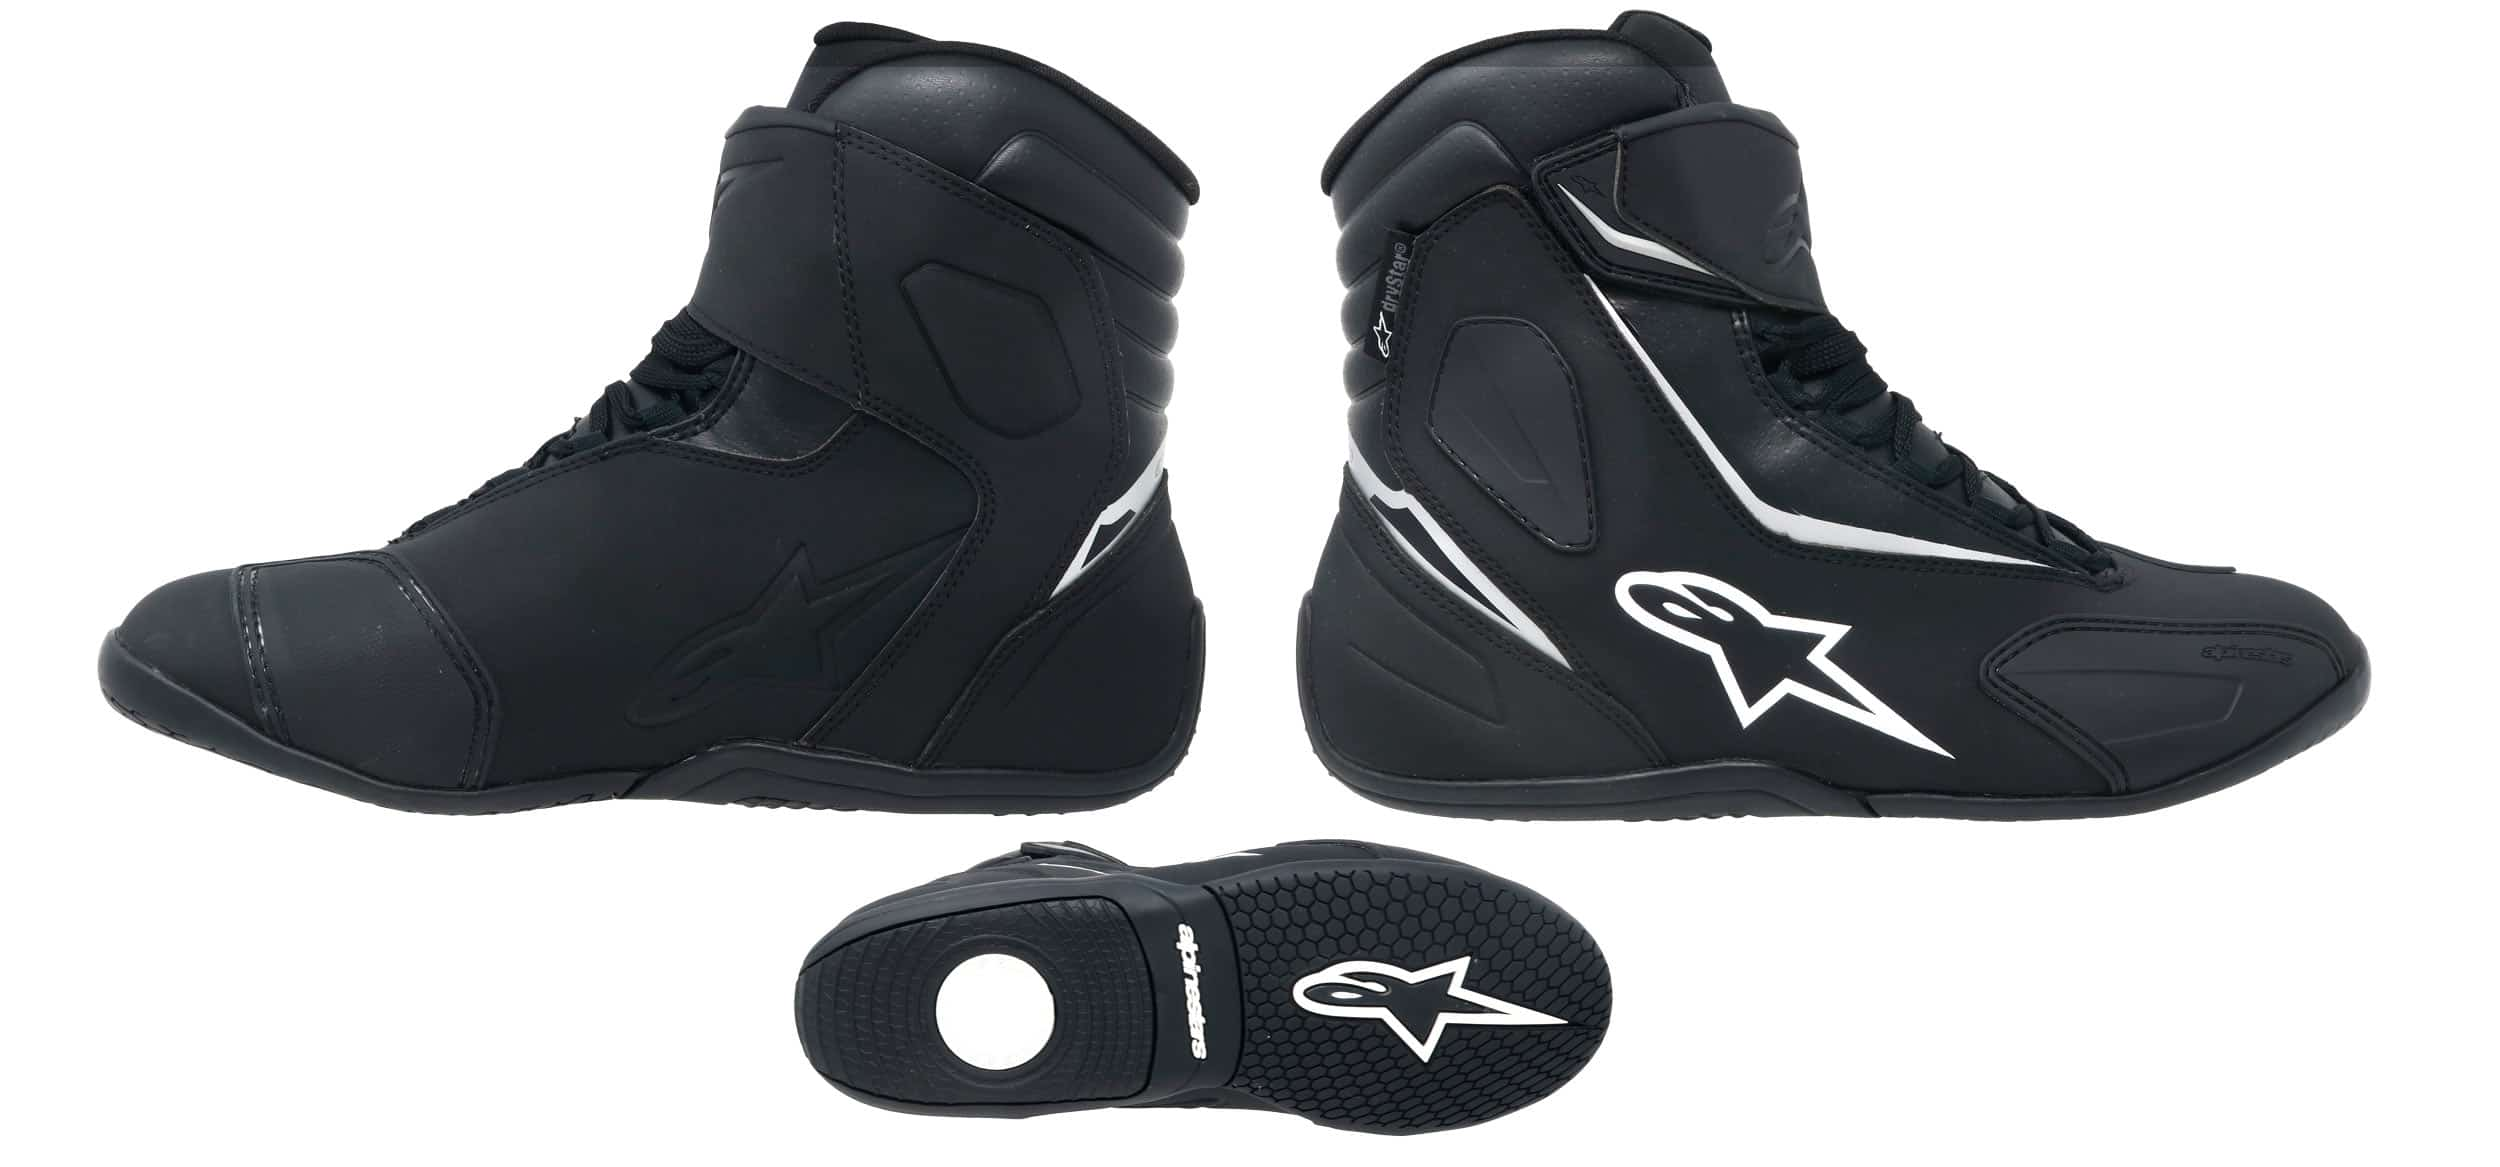 Alpinestars Fastback Drystar riding shoes